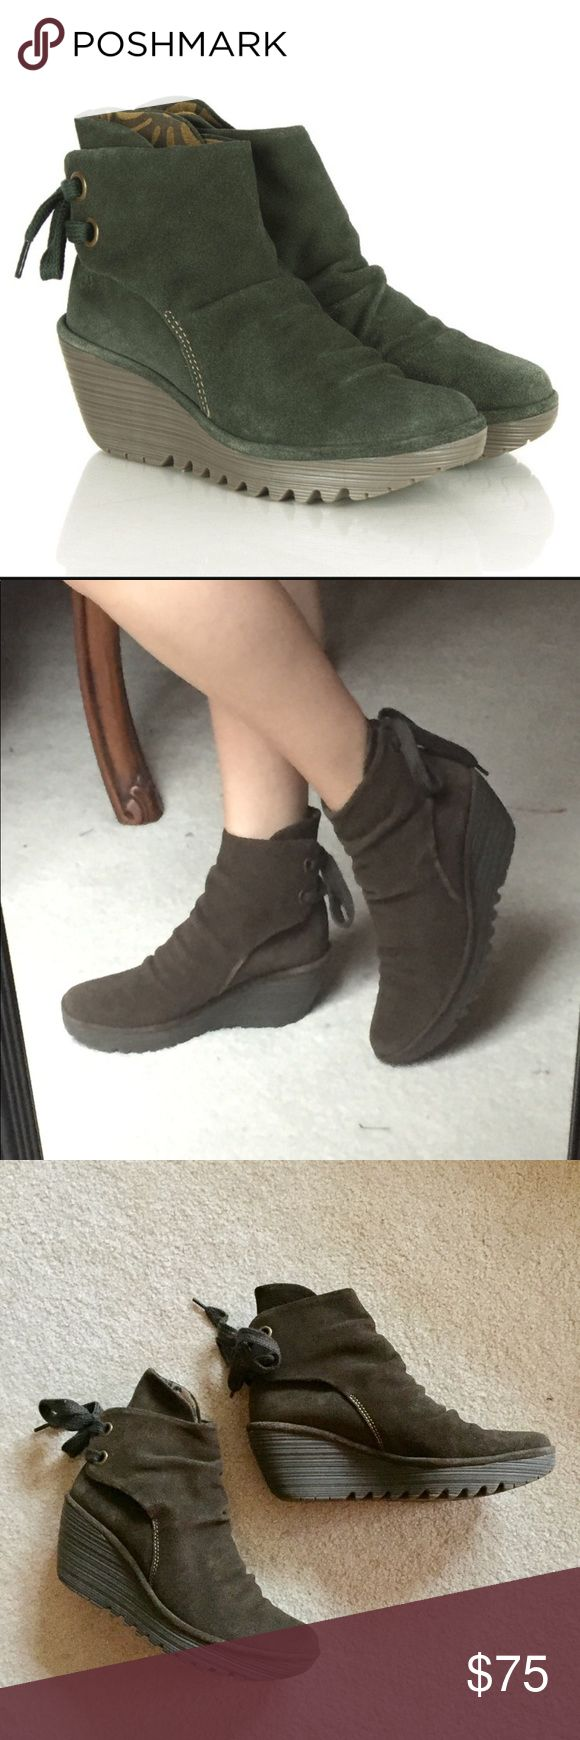 NWOT Fly London Sludge Oil Suede Wedge Boots Brand new, in perfect condition! No flaws. Size 40. In an army green color, called sludge oil. Fly London Shoes Ankle Boots & Booties